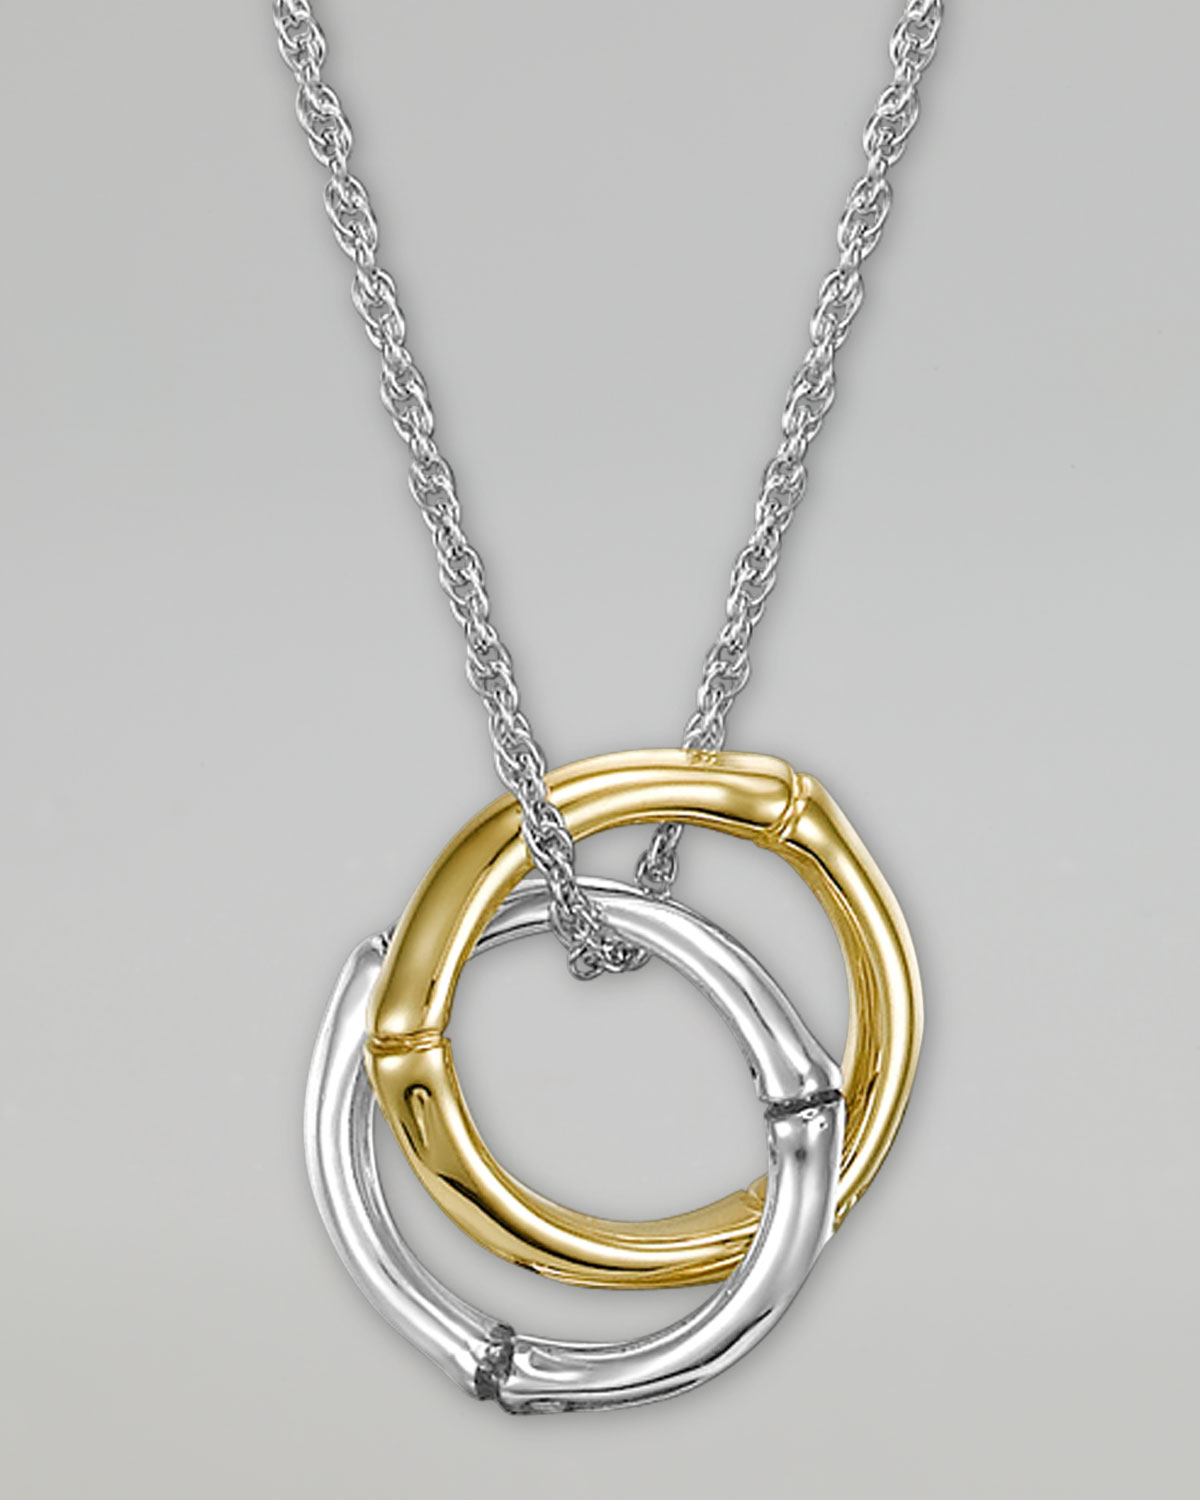 John Hardy Bamboo Gold Silver Small Round Pendant Necklace